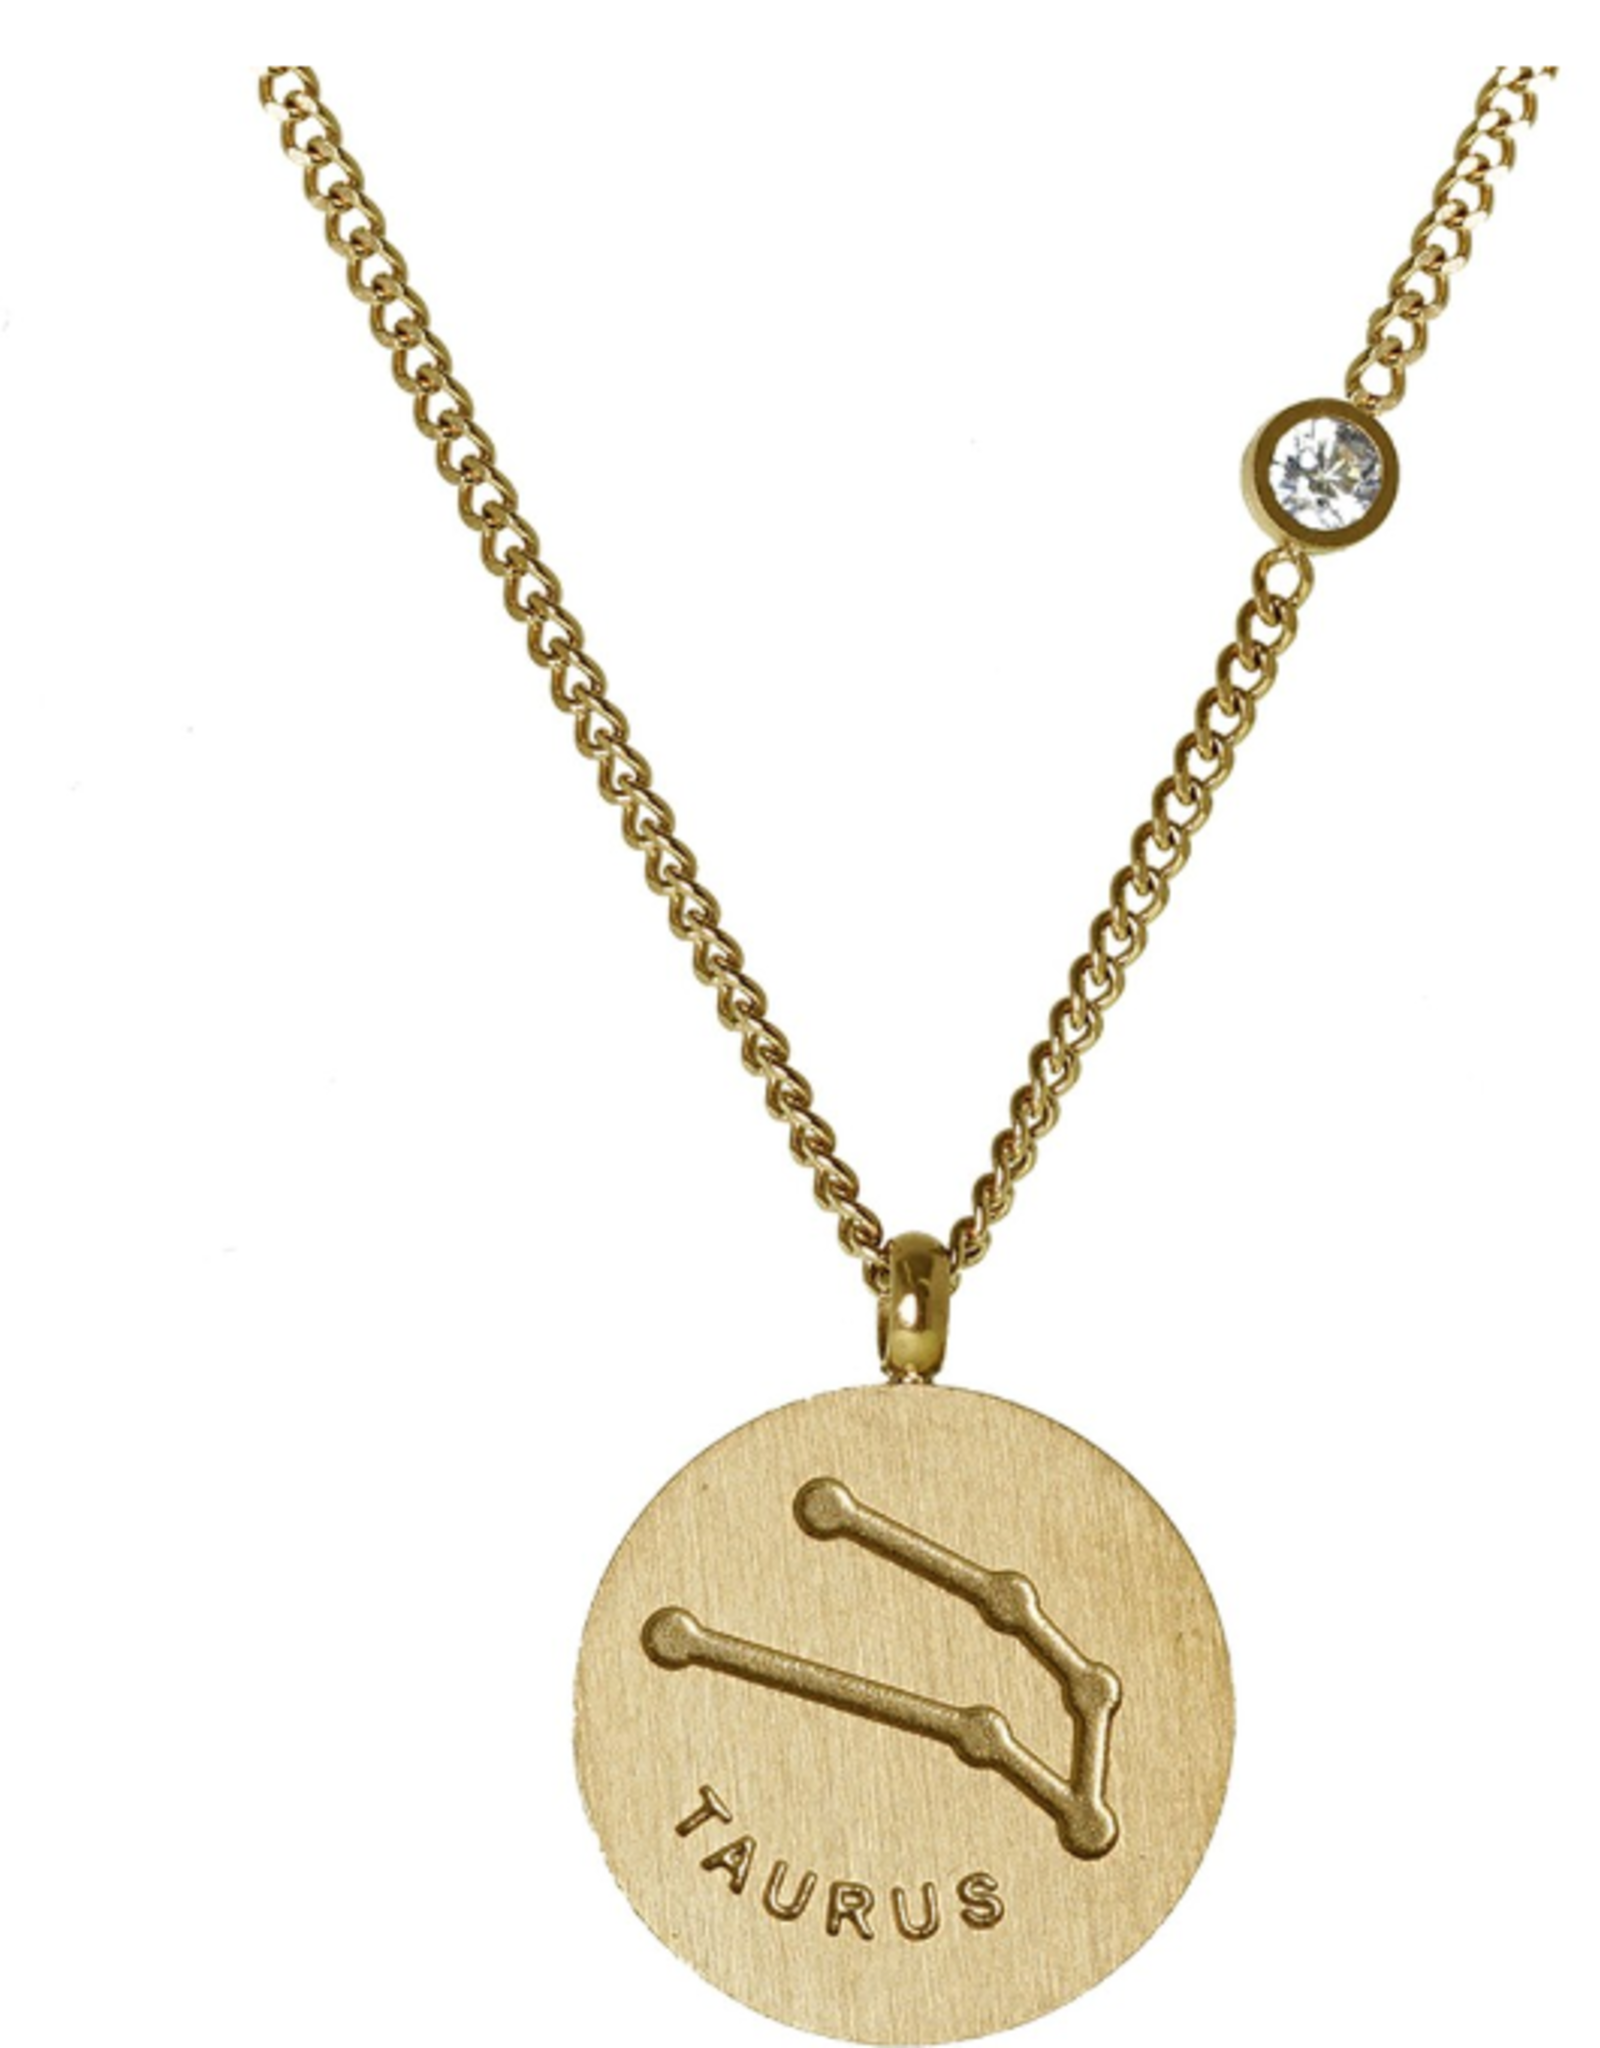 Gold Taurus Necklace